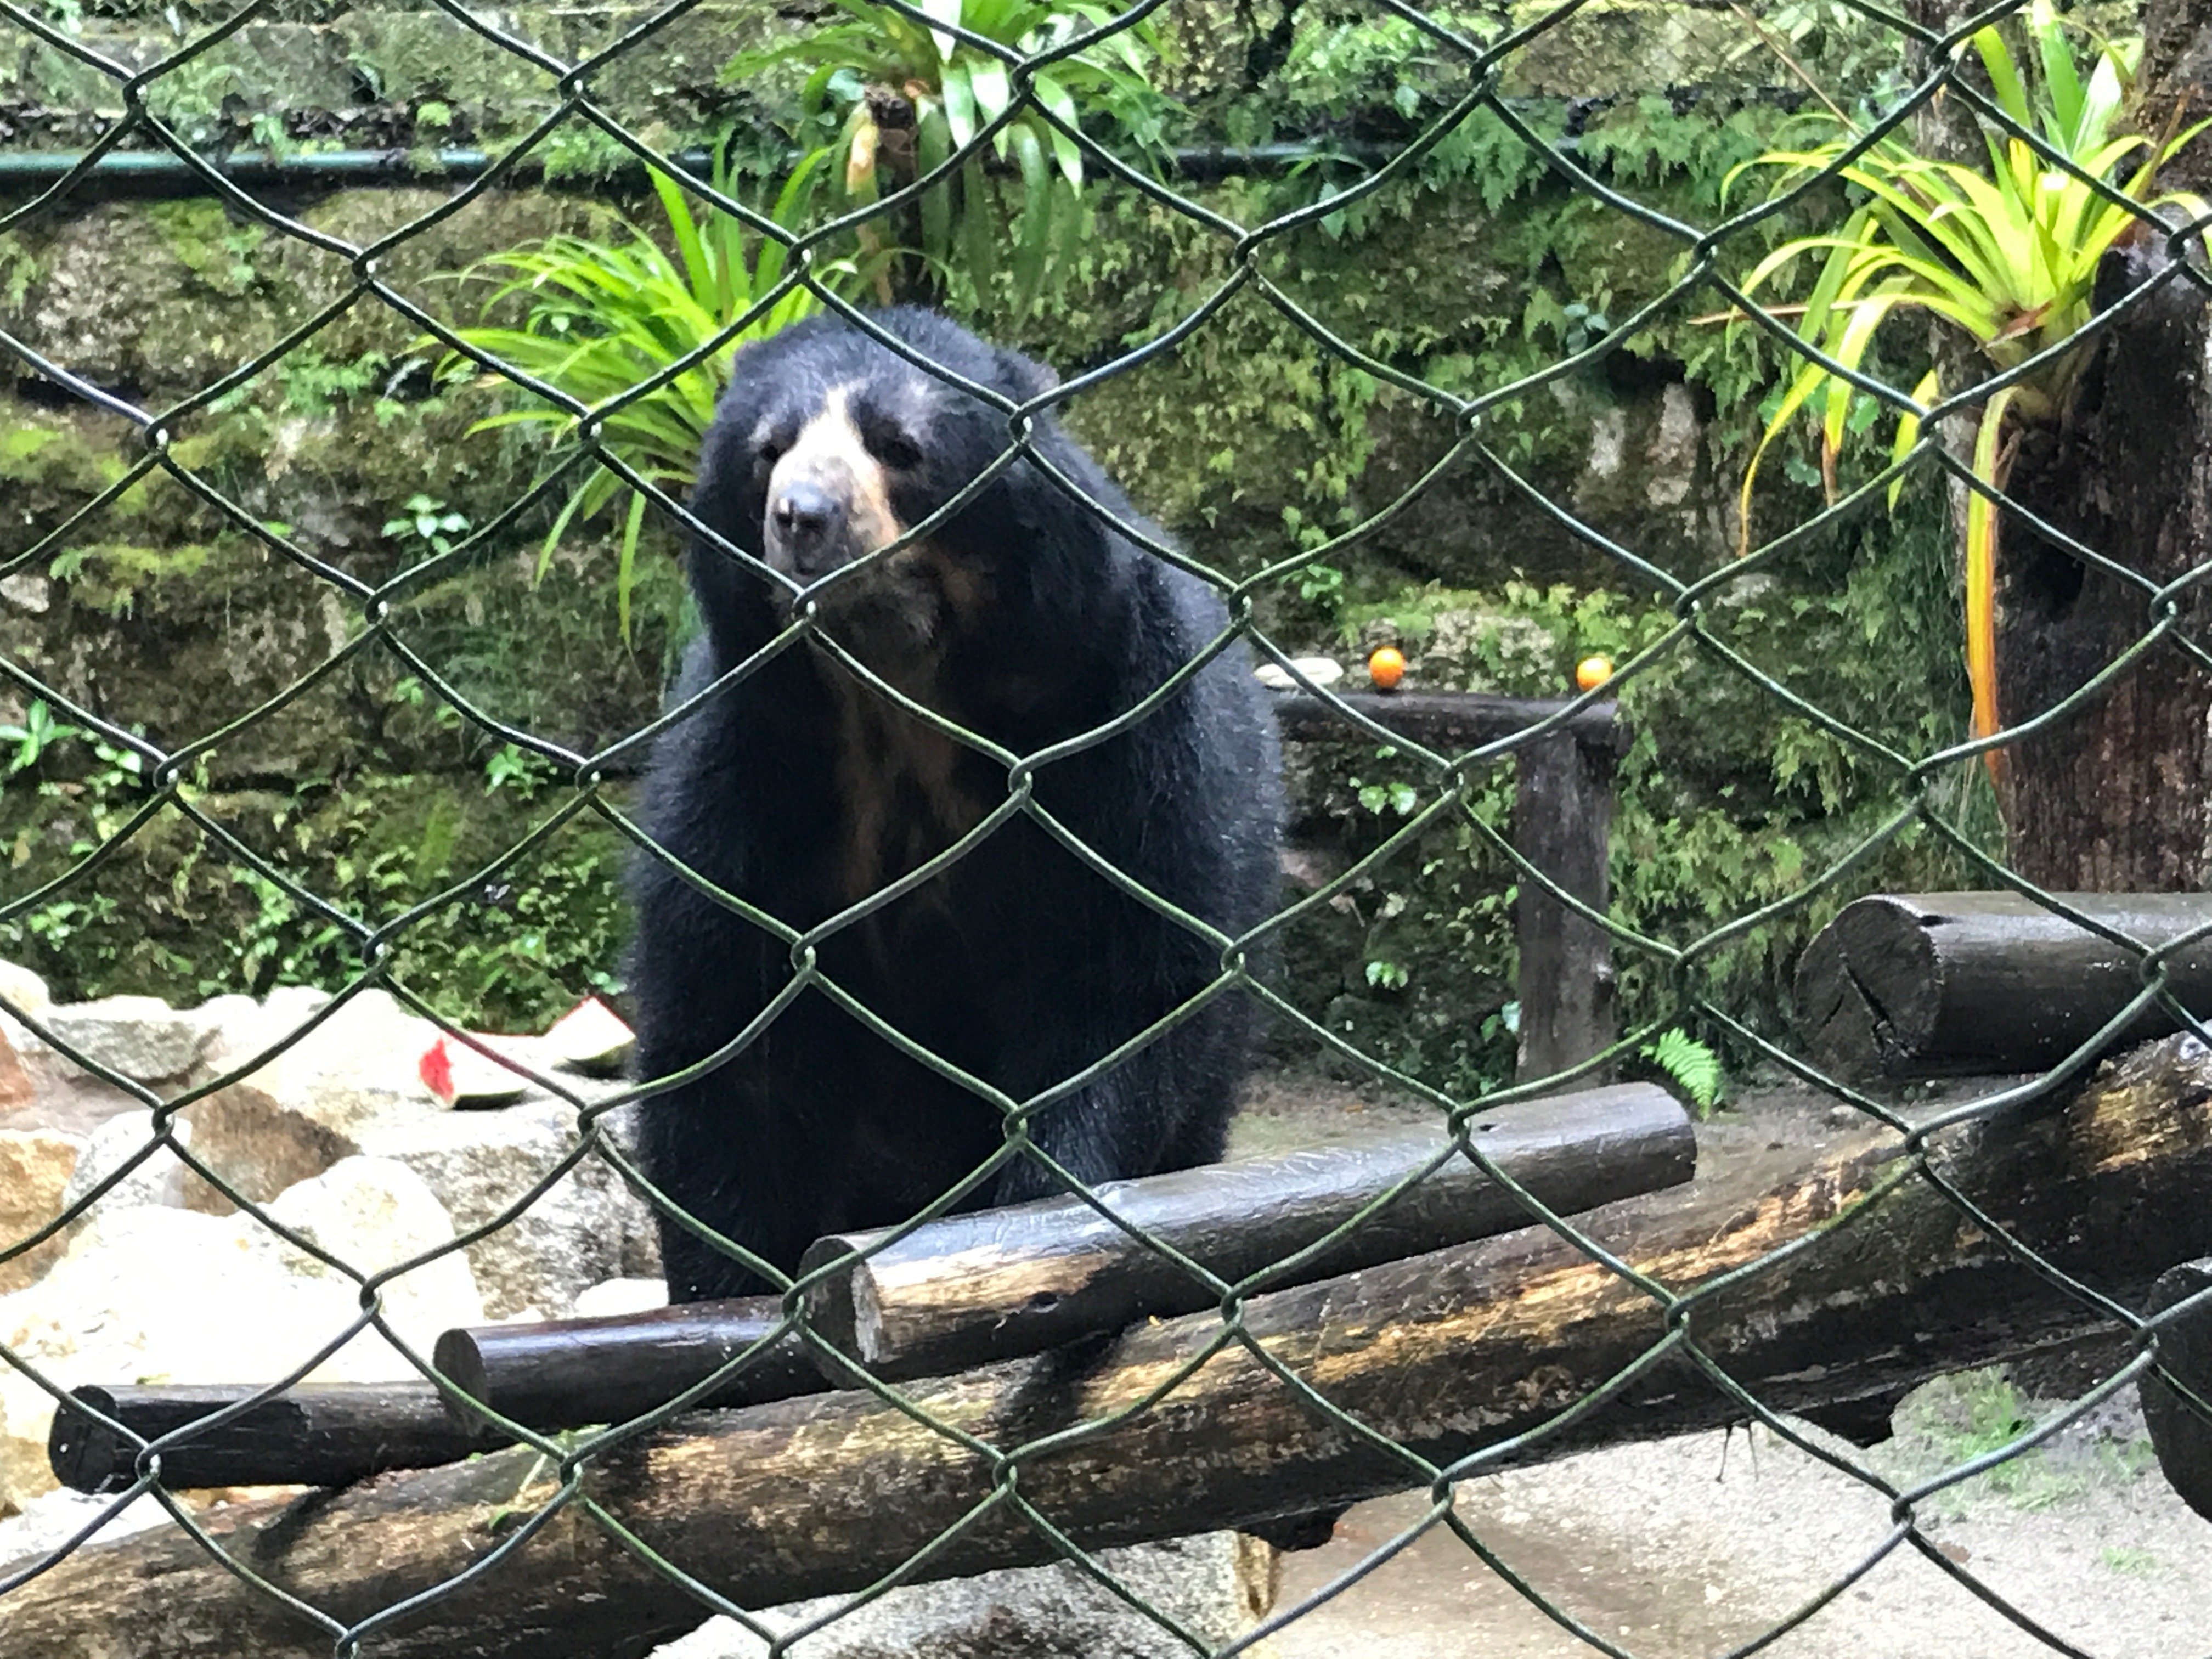 Spectacled bear at the Inkaterra